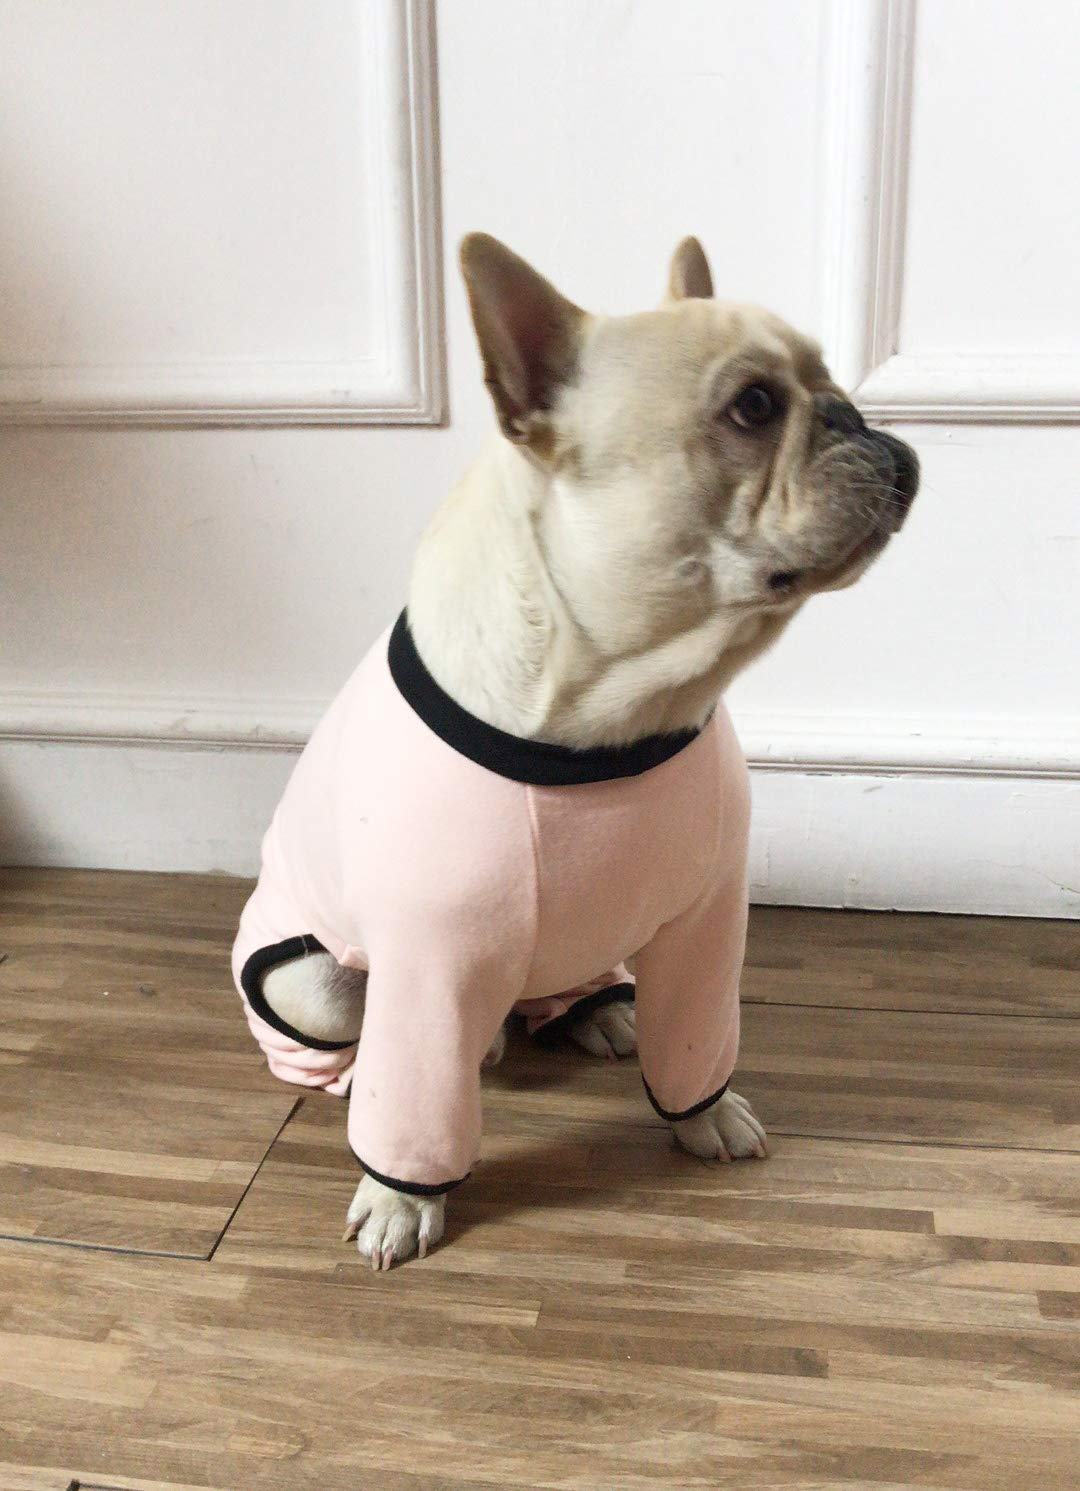 Pink XXXLWEIJ Pet Jumpers French Bulldog Jumpsuit Soft Warm Dog Jumpers Autumn Winter Dog Clothes for Medium Dogs Pug Bulldog (color   Pink, Size   XXXL)